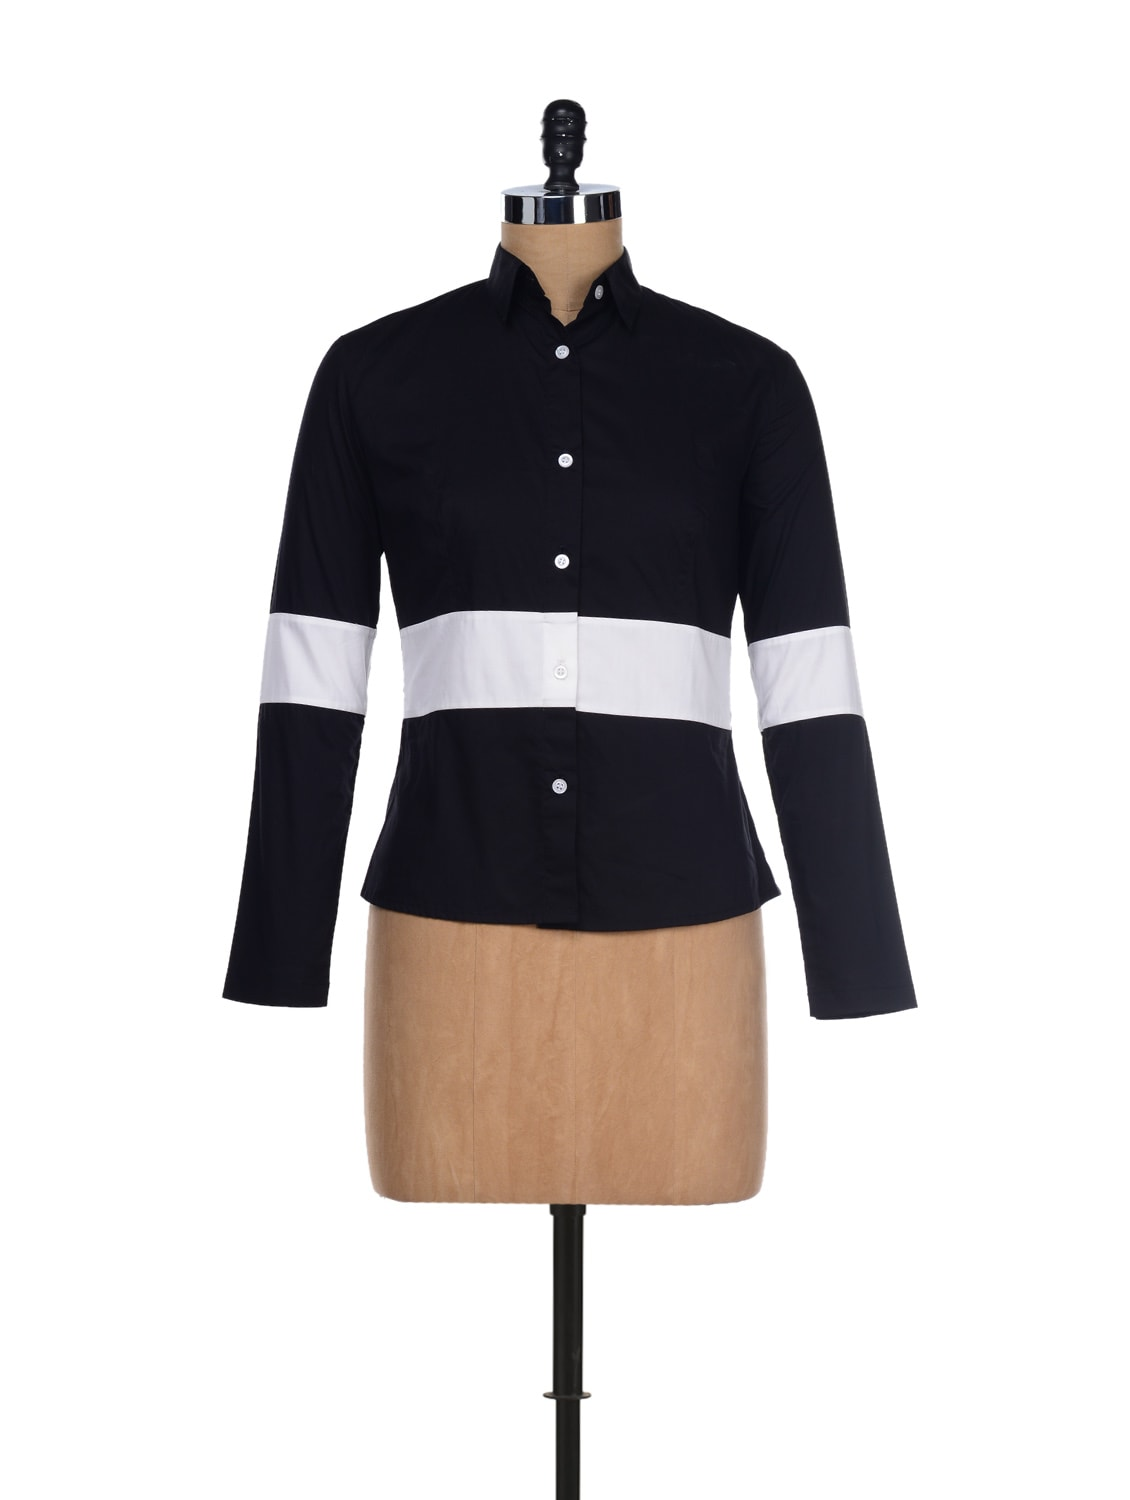 Black & White Colorblocked Shirt - I KNOW By Timsy & Siddhartha